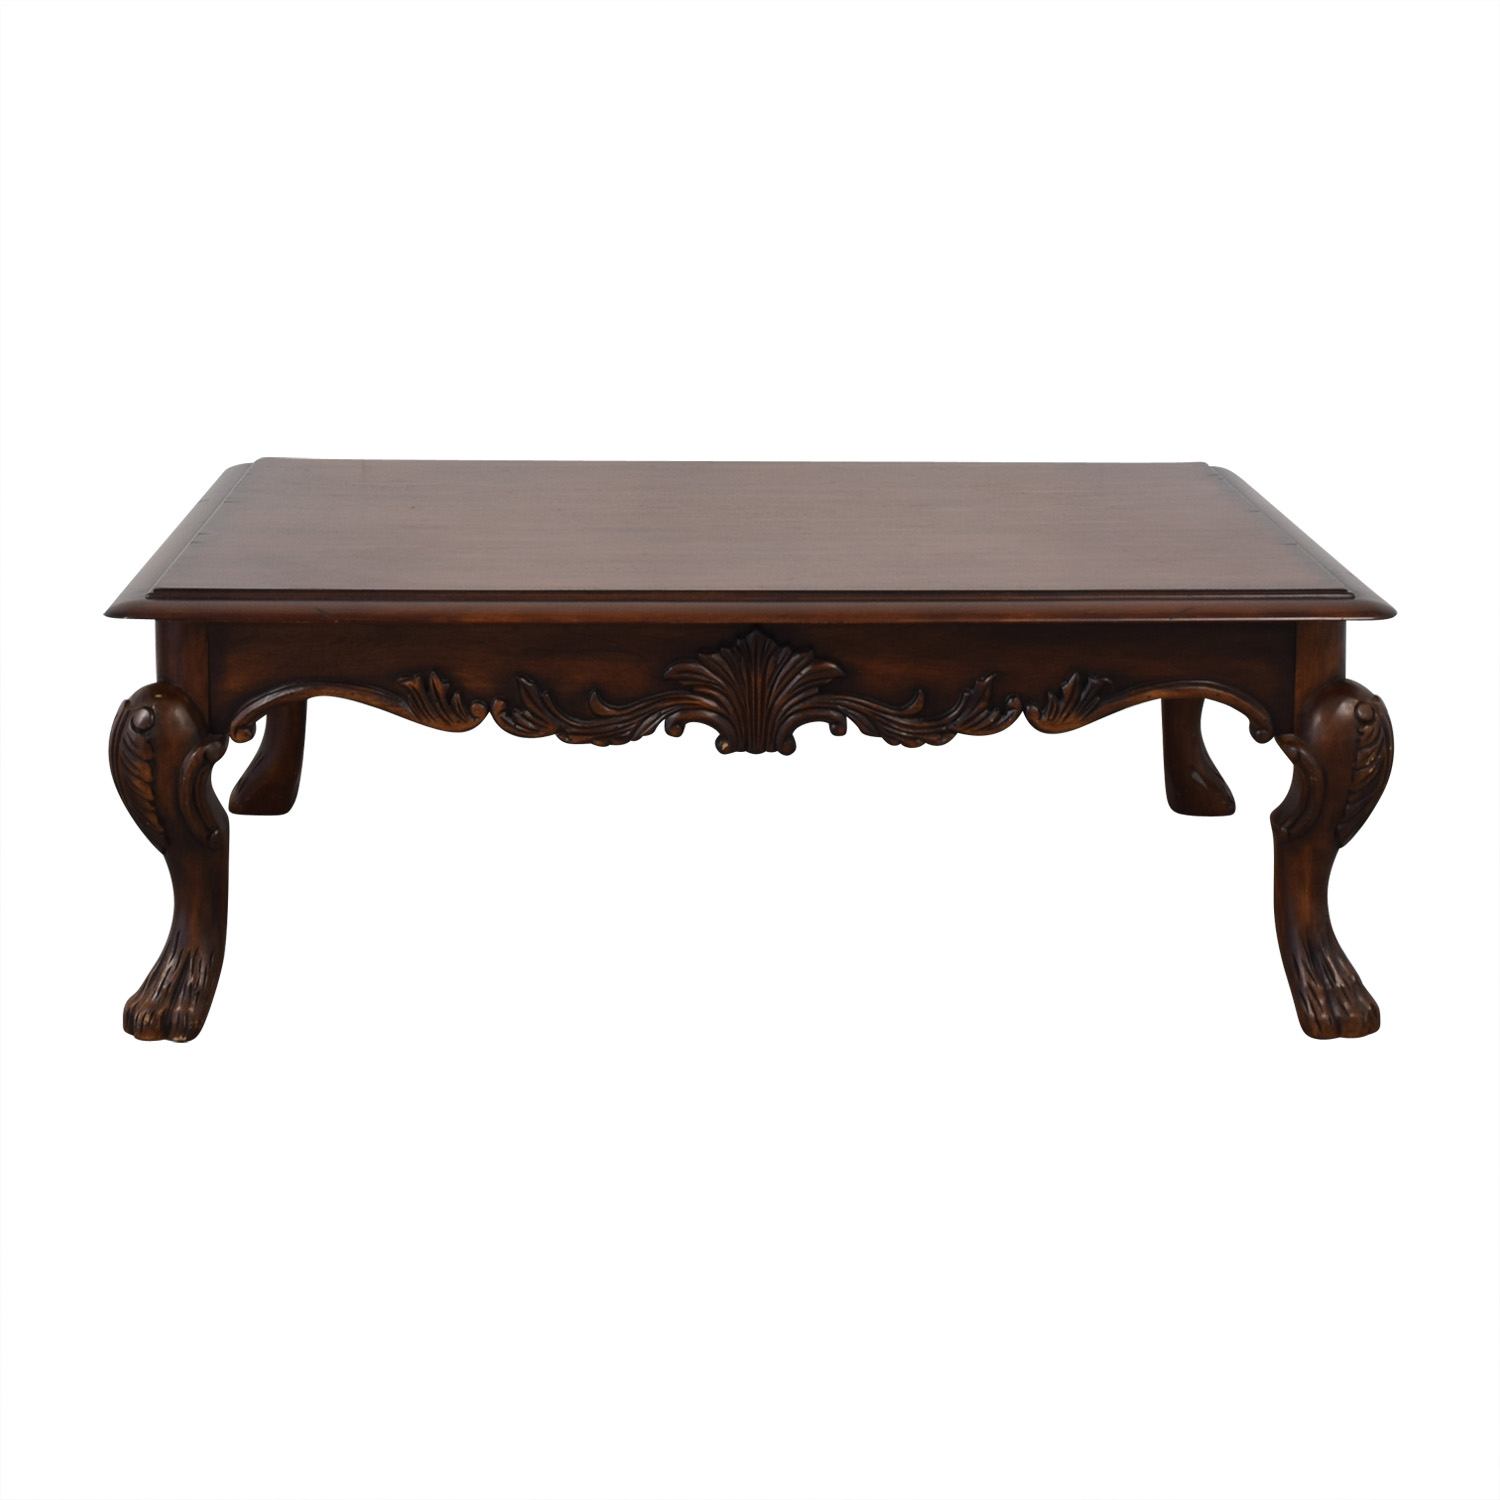 Ethan Allen Ethan Allen Wood Coffee Table for sale